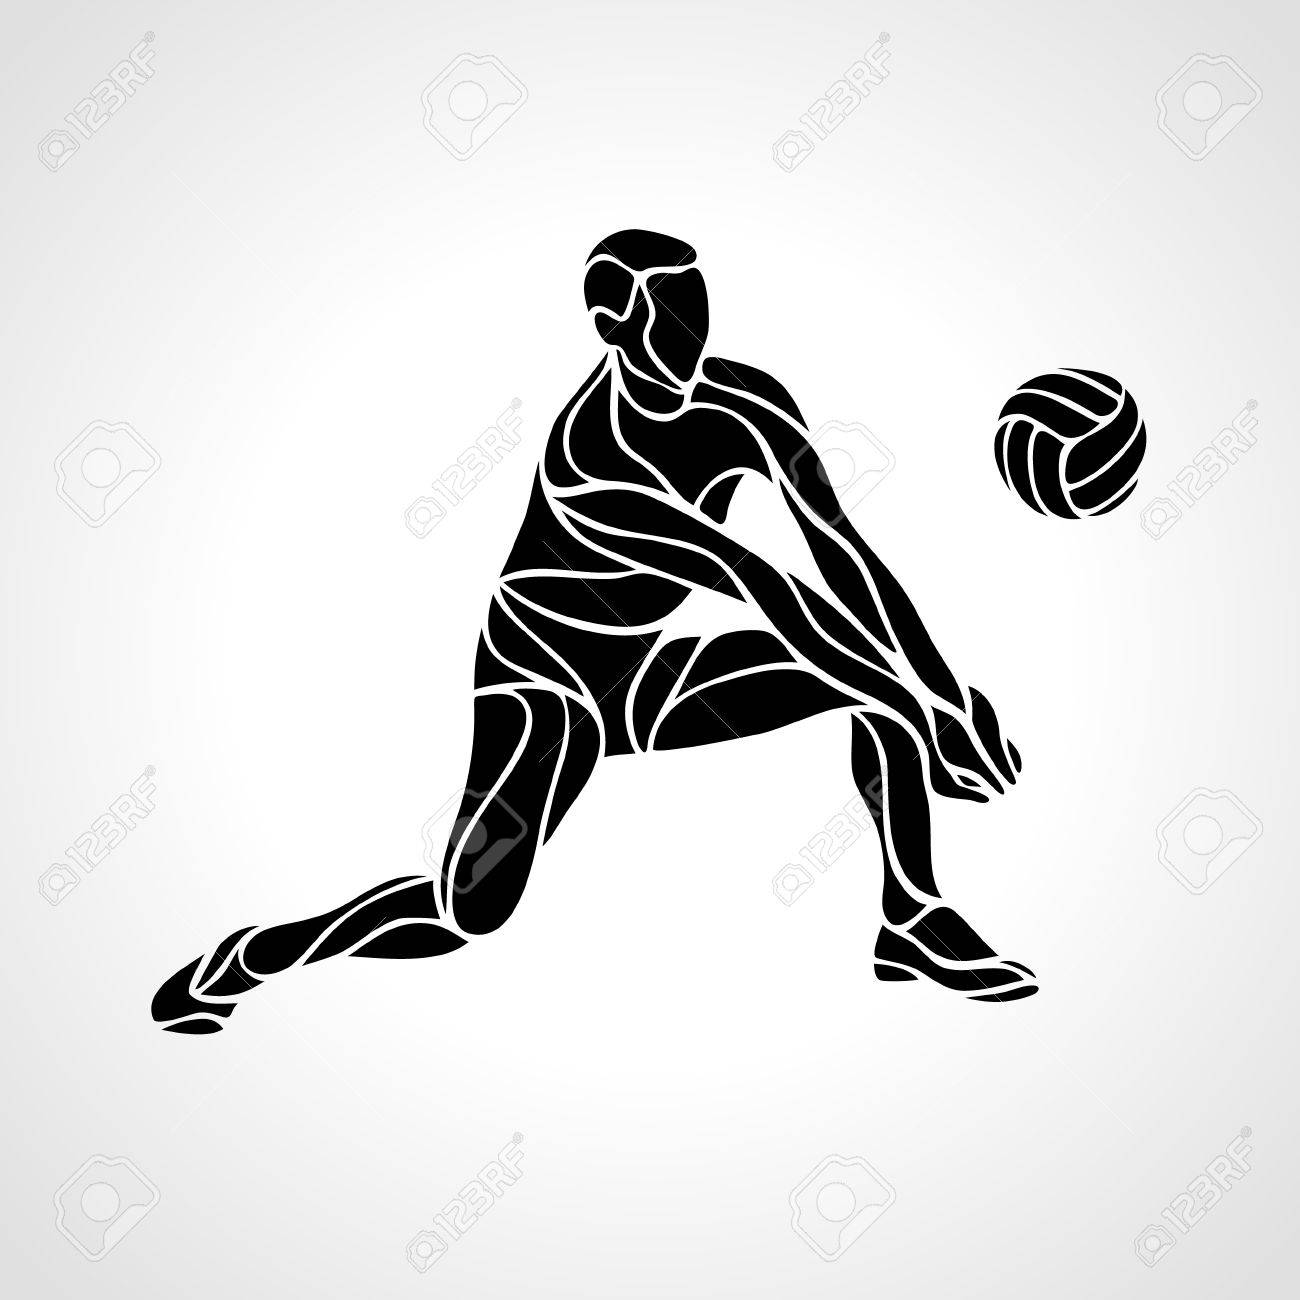 Volleyball Player Receiving Feed Silhouette Of A Abstract Volleyball Royalty Free Cliparts Vectors And Stock Illustration Image 55873884